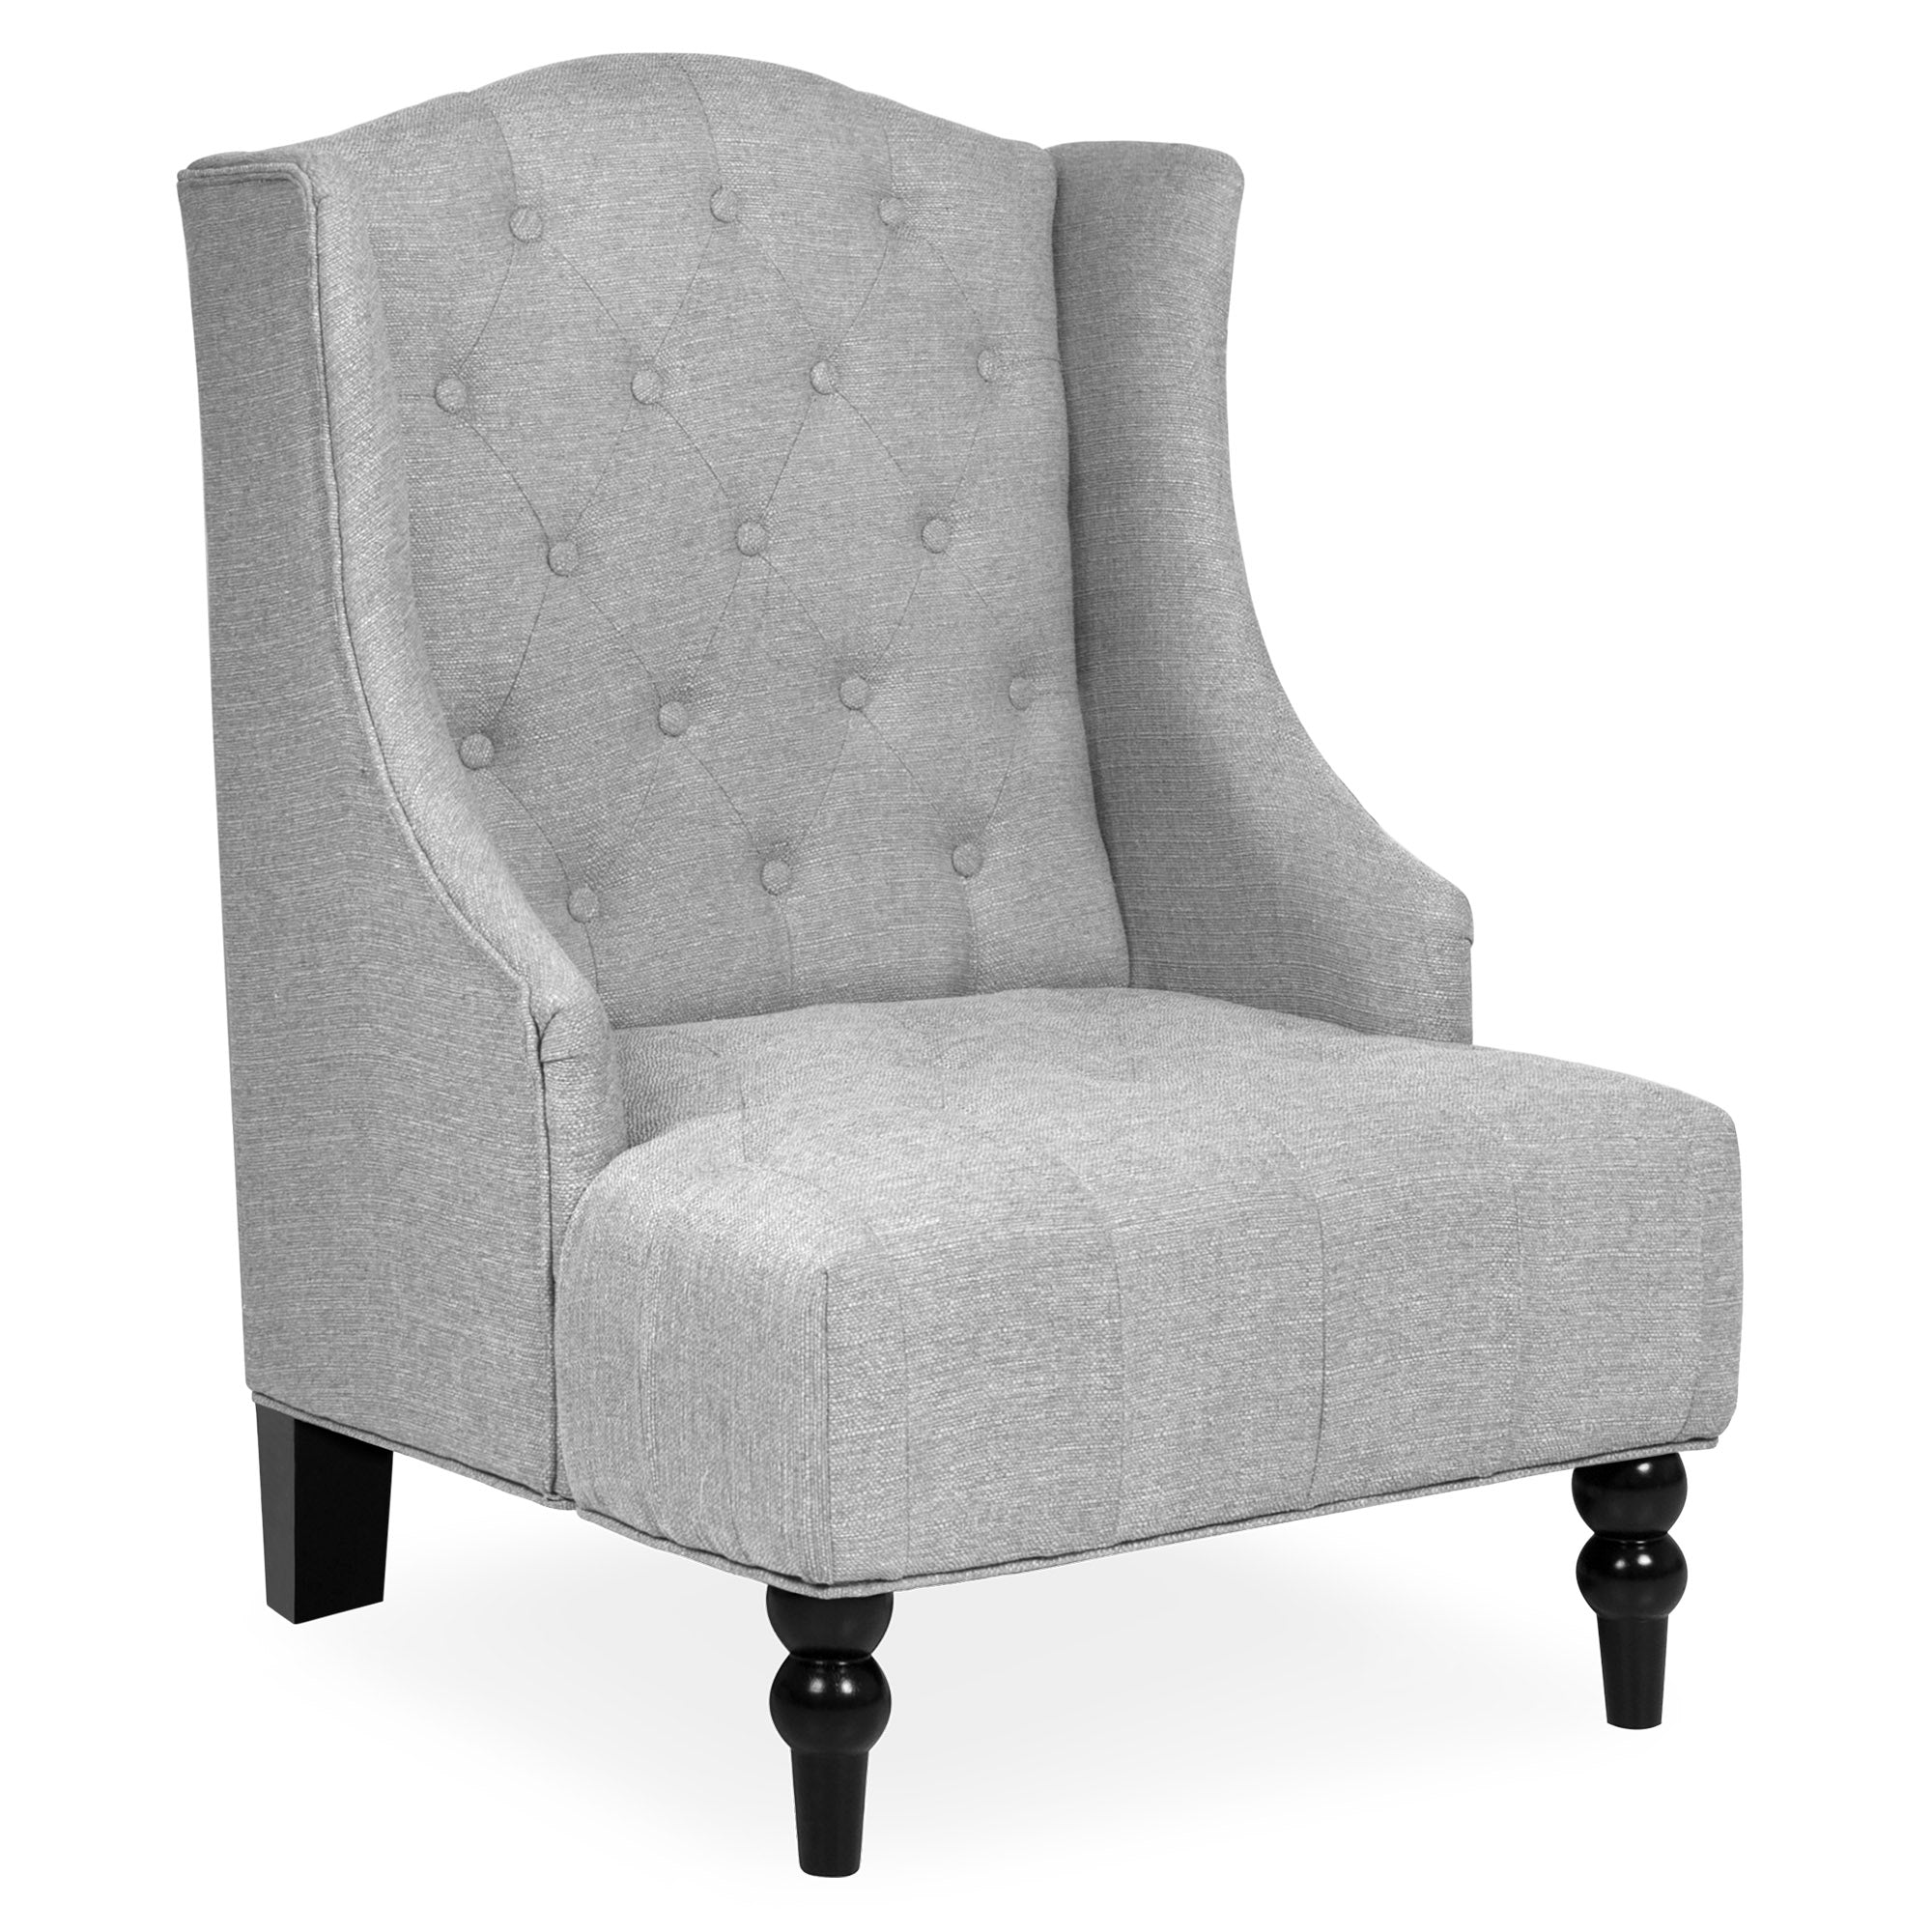 Cool French Style Tall Wingback Tufted Fabric Accent Chair W Wooden Legs Ibusinesslaw Wood Chair Design Ideas Ibusinesslaworg